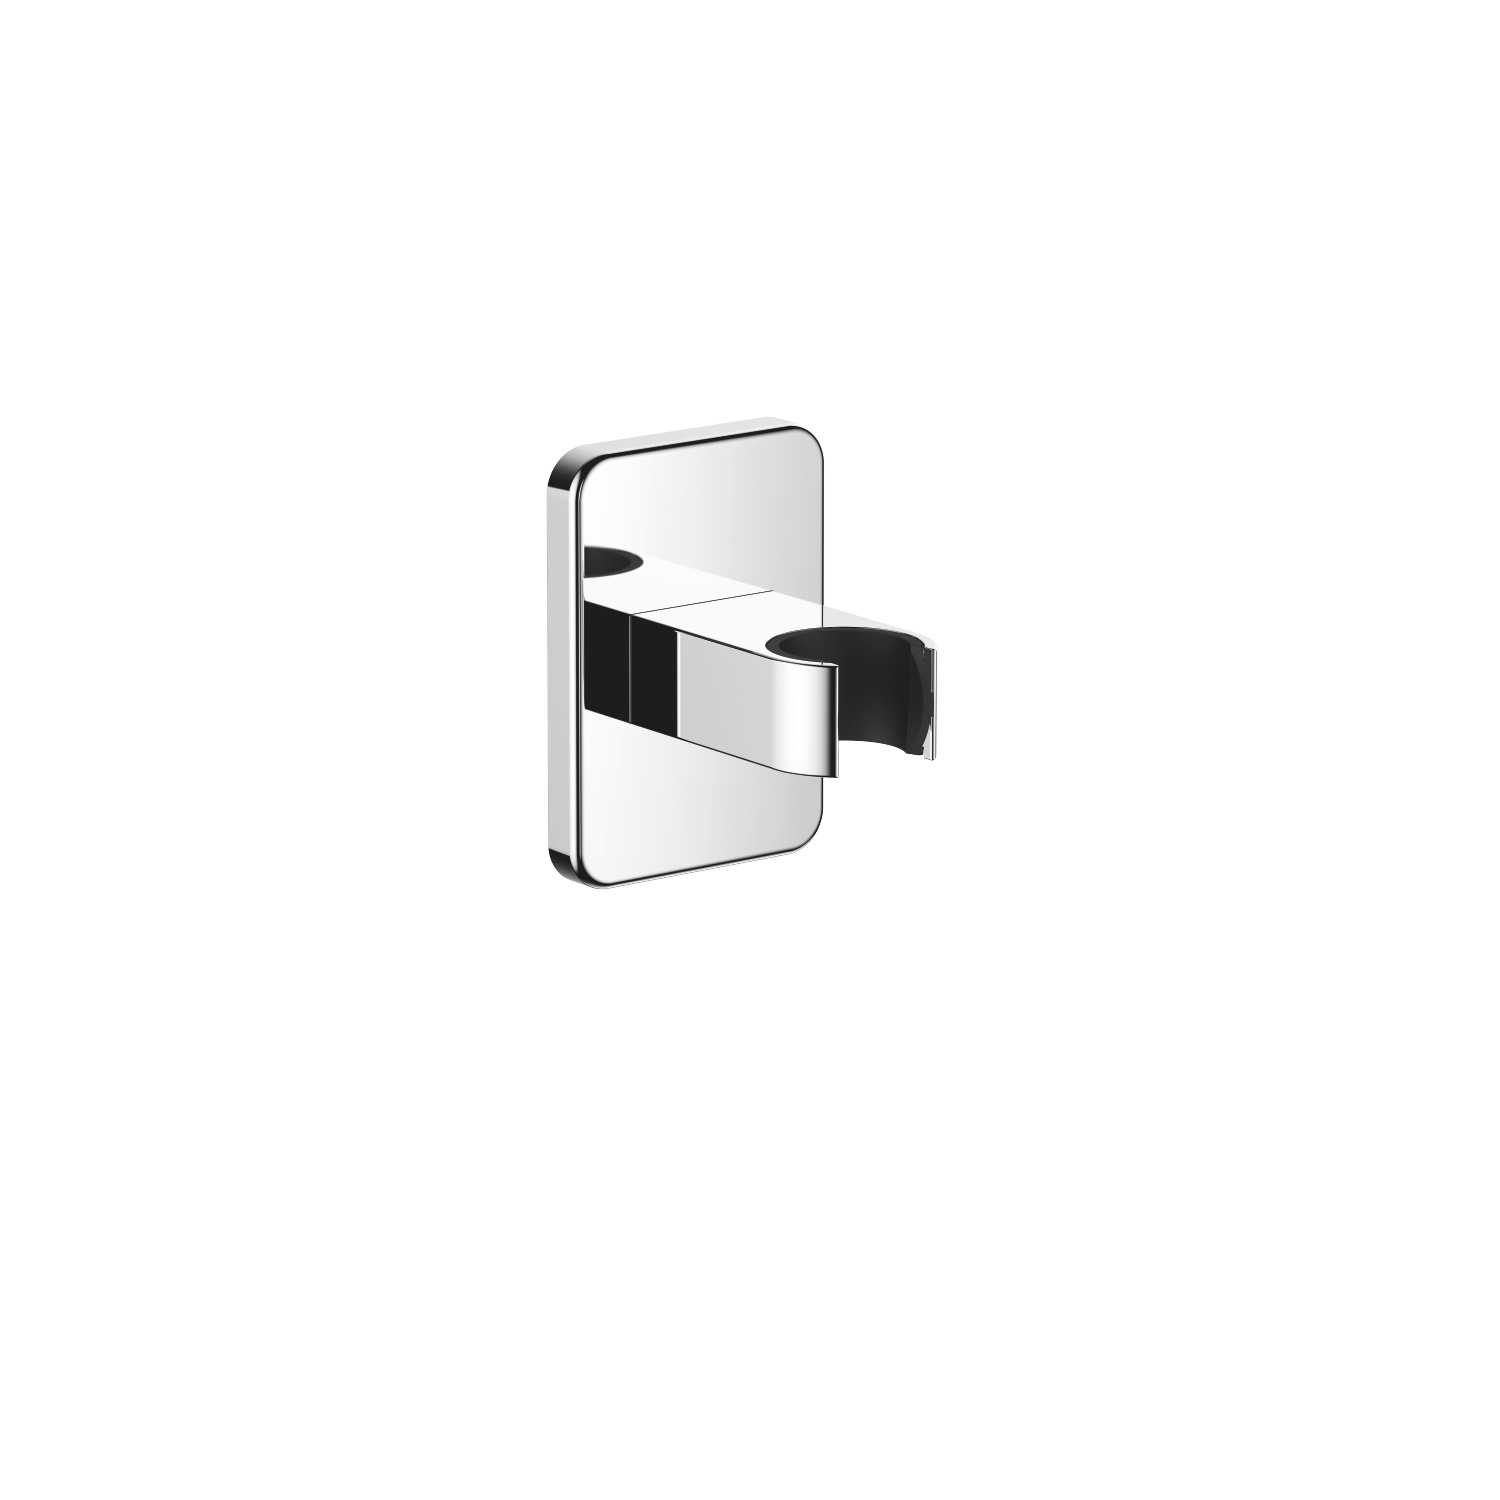 Wall bracket - polished chrome - 28 050 710-00